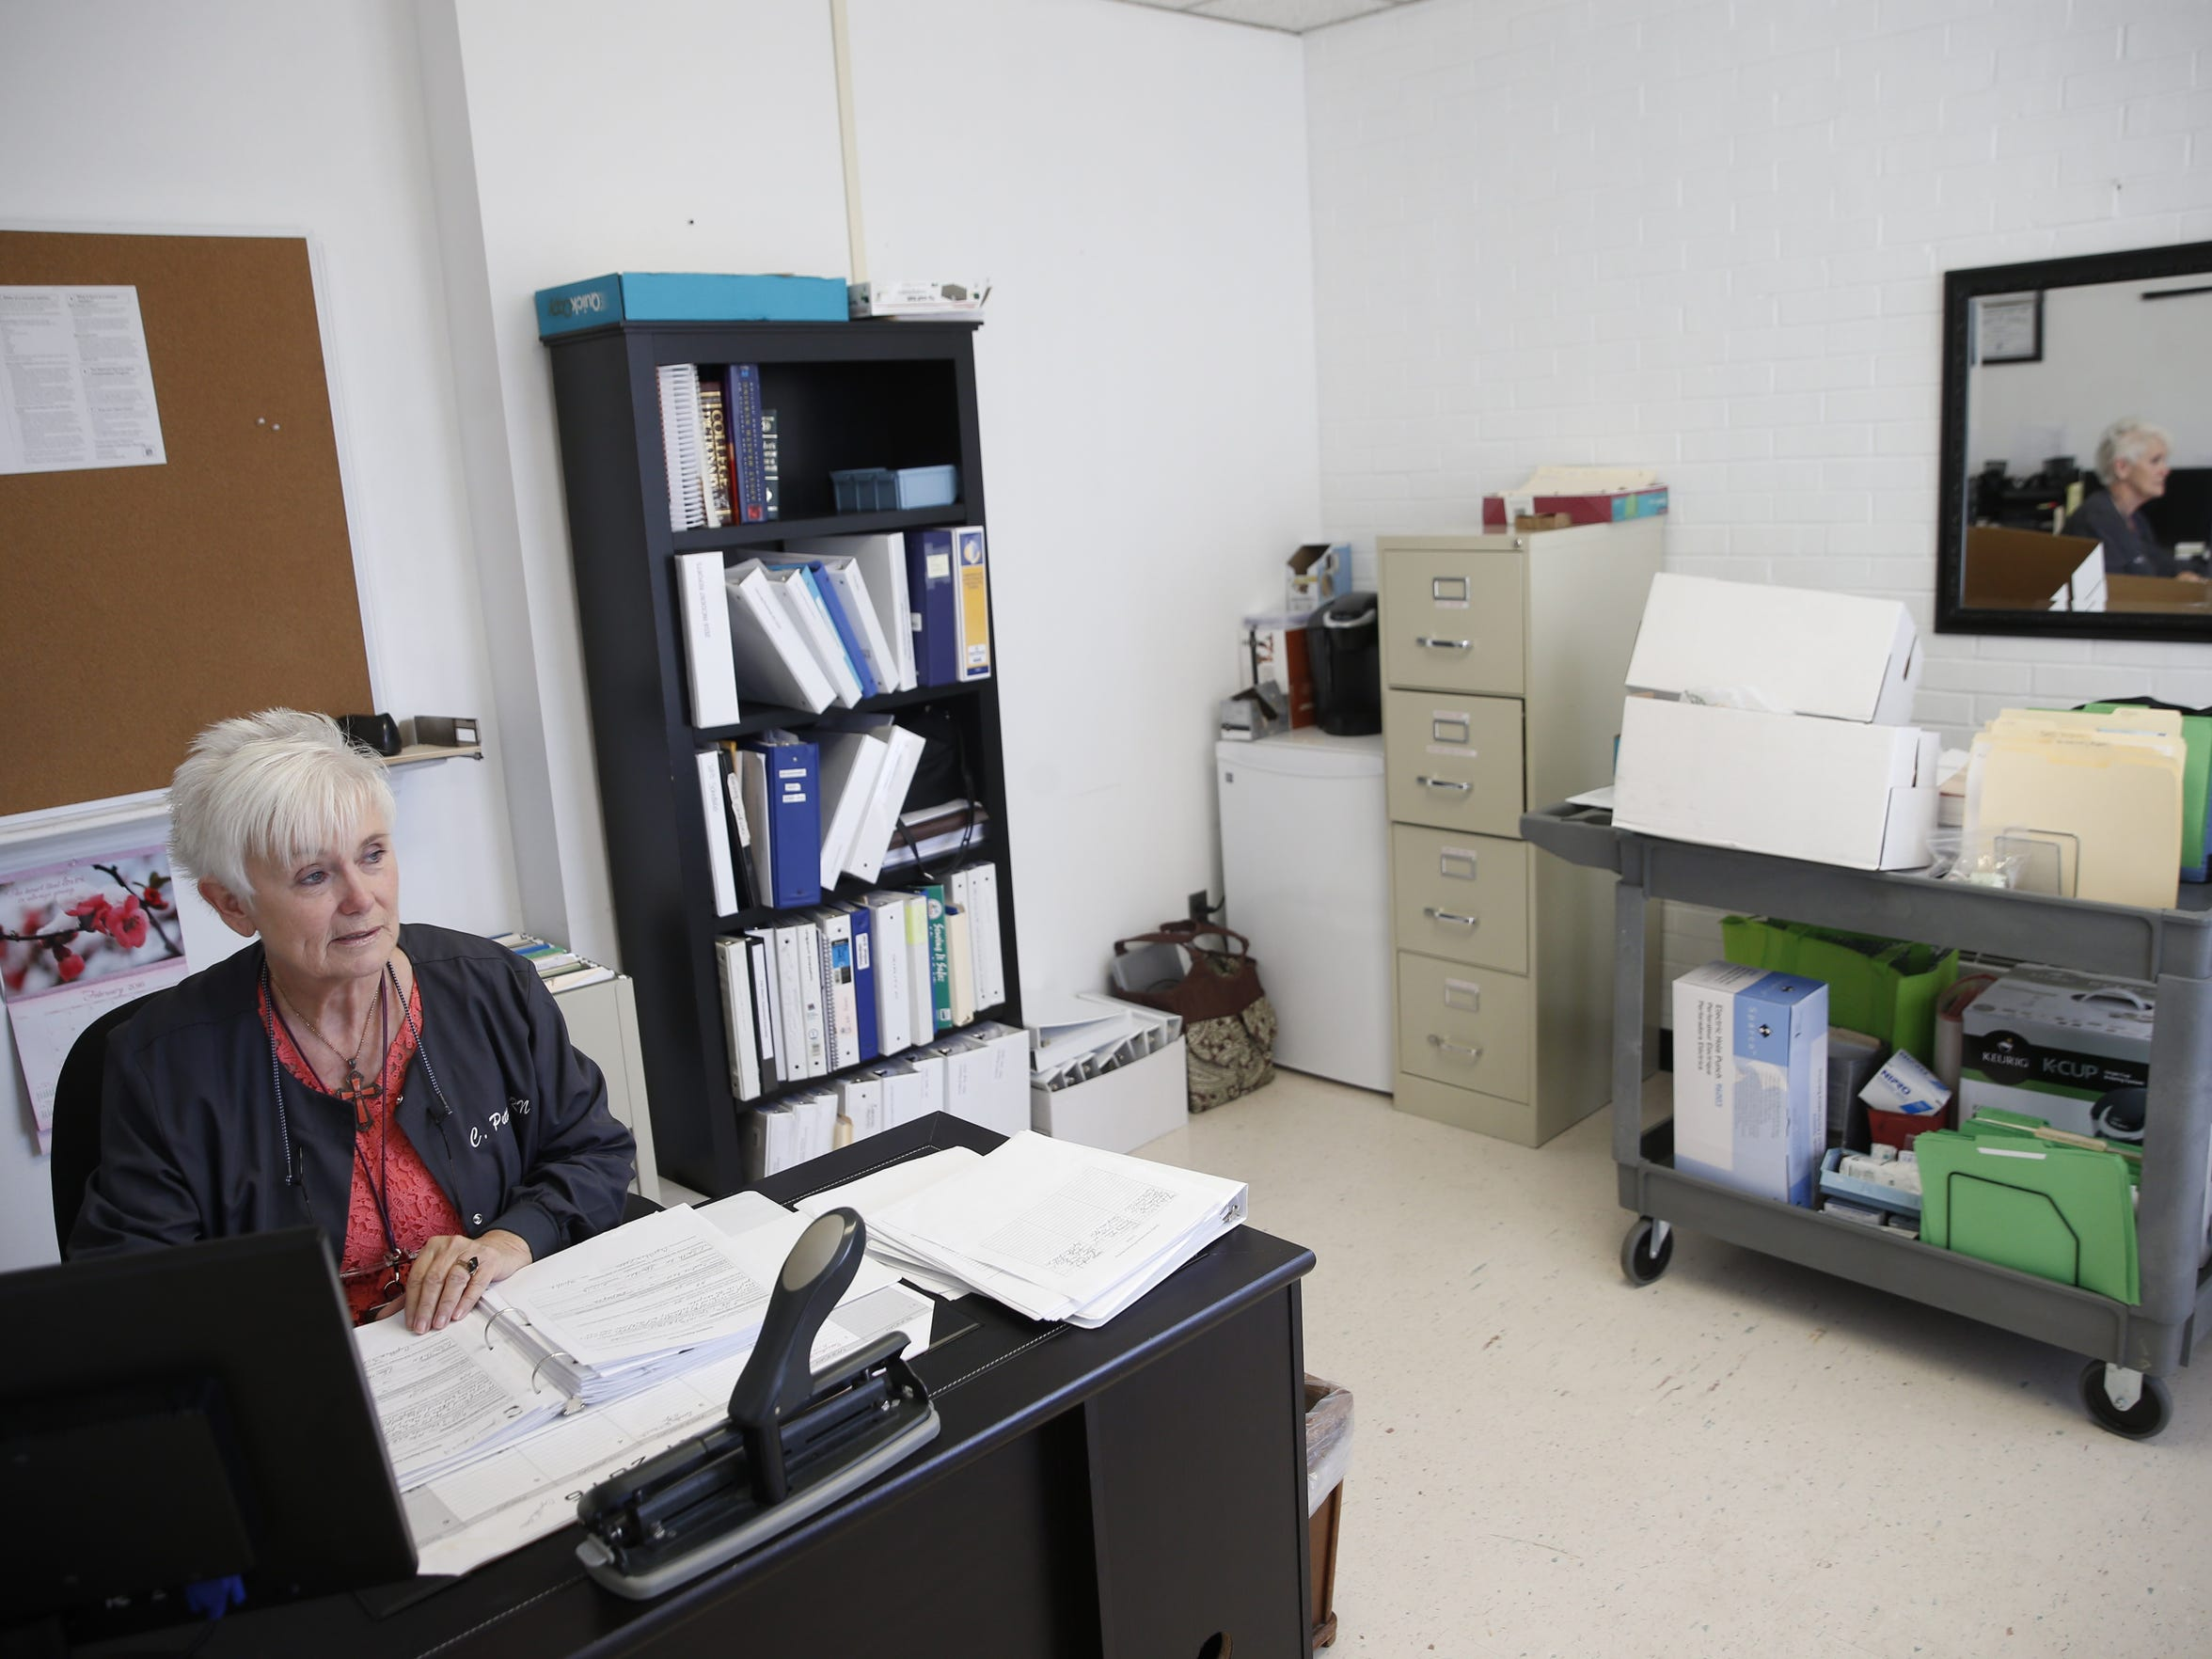 Compliance Officer and Risk Manager Cynthia Pettis works in her office at Calhoun Liberty Hospital, where she started work a month ago, soon after the hospital's previous CEO Phillip Hill began being investigated in connection with a more than $1 million fraud scheme.